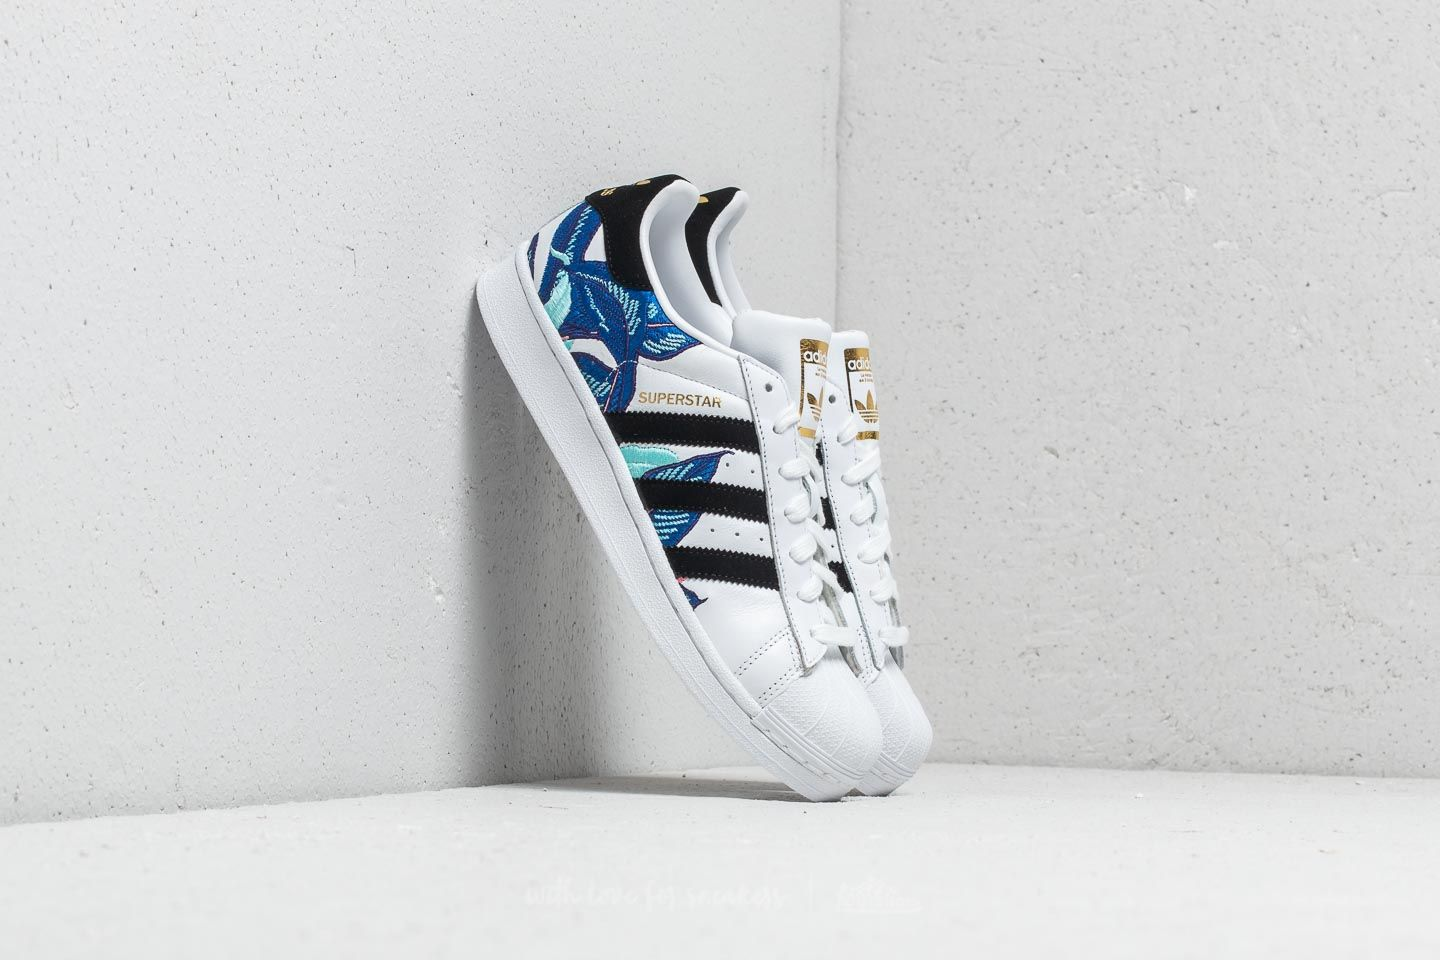 da1c2cd911d adidas Superstar W Ftw White/ Core Black/ Metallic Gold | Footshop